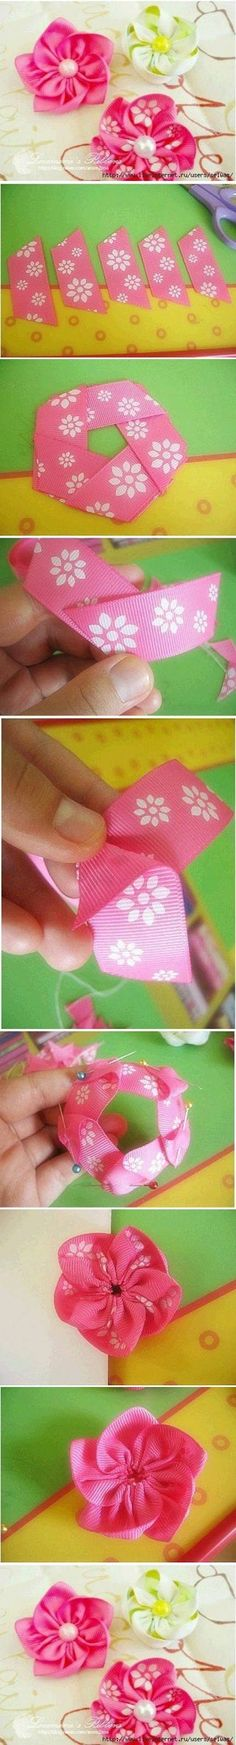 DIY Tape Flowers flowers diy tape easy crafts diy ideas diy crafts do it…